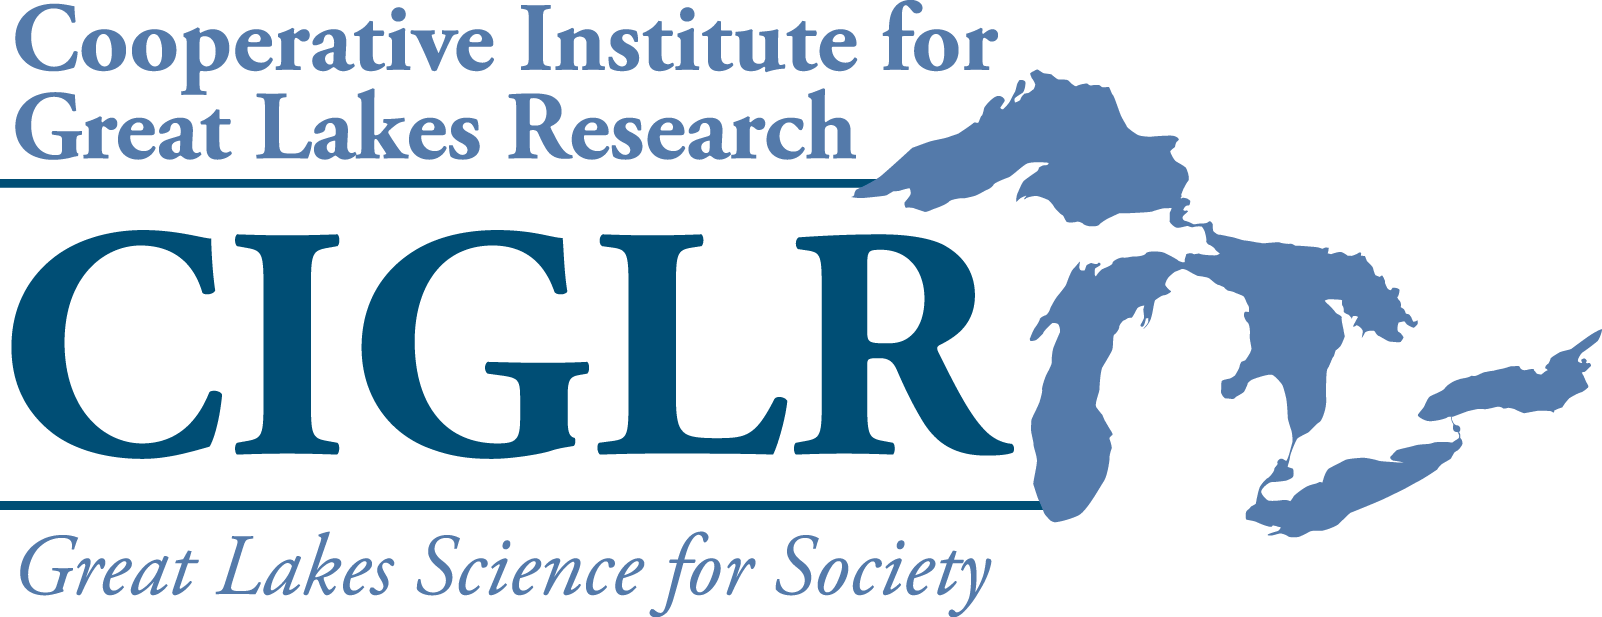 Cooperative Institute of Great Lakes Research